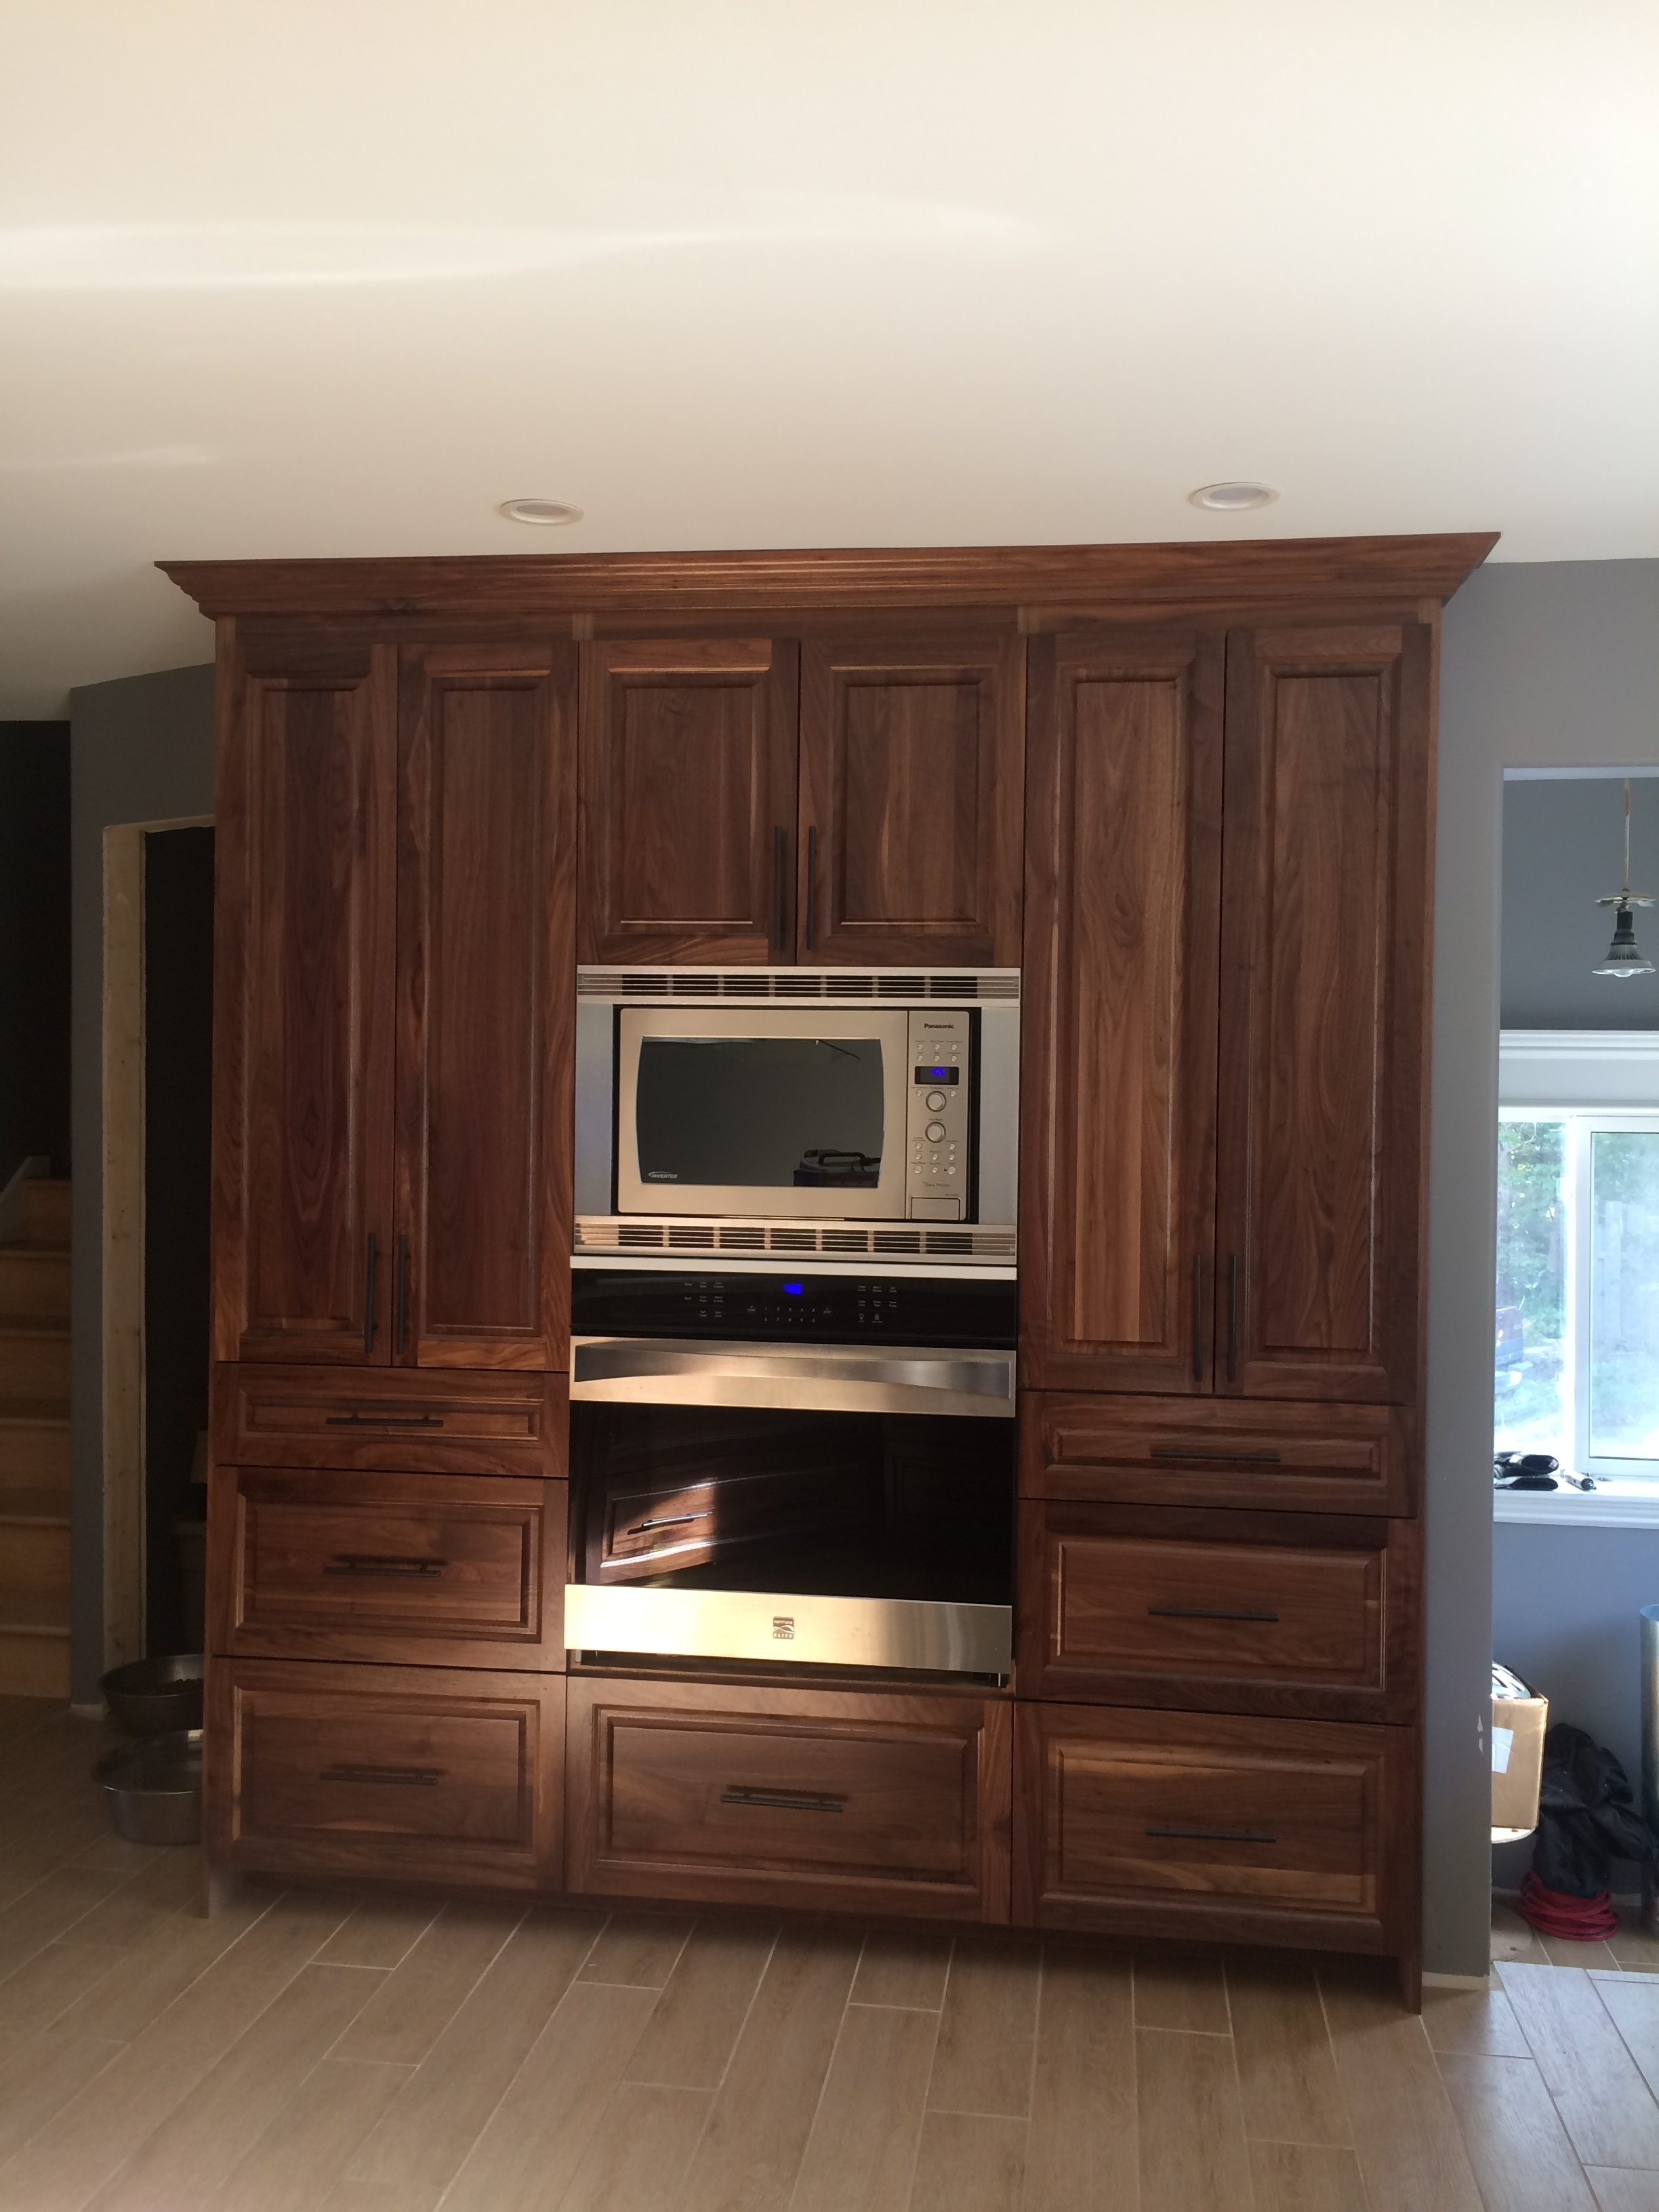 Oven Unit Pantry Wall